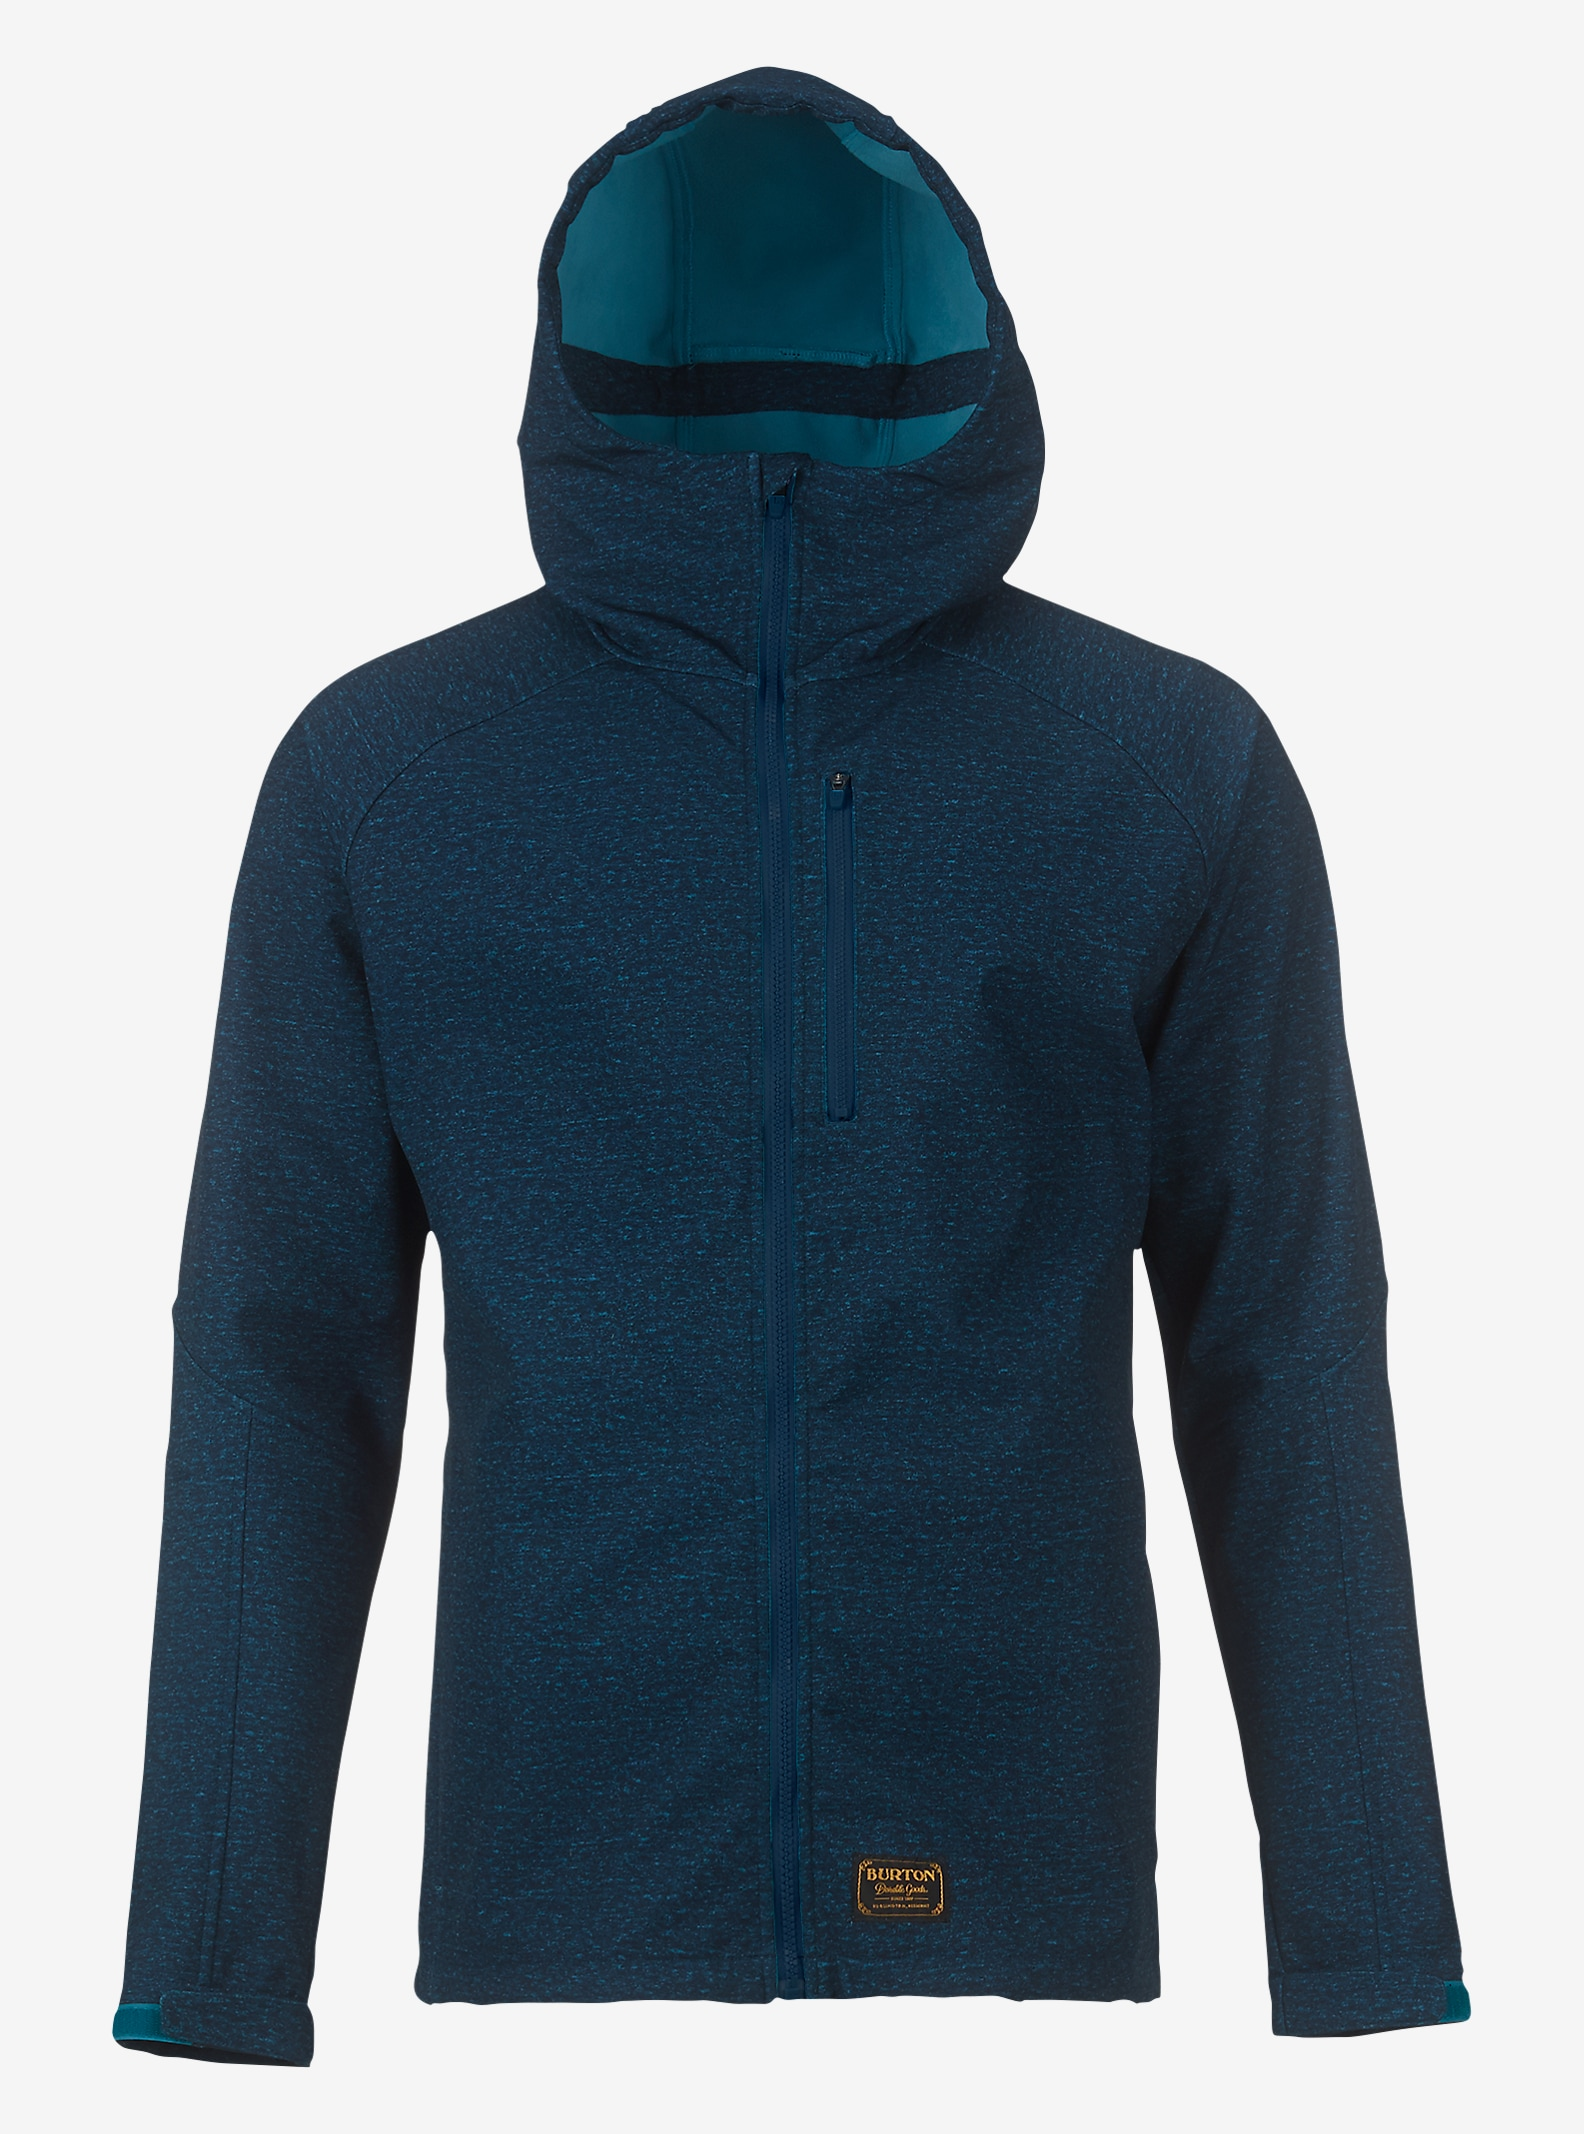 Burton - Softshell Process affichage en Blue Mirage Heather